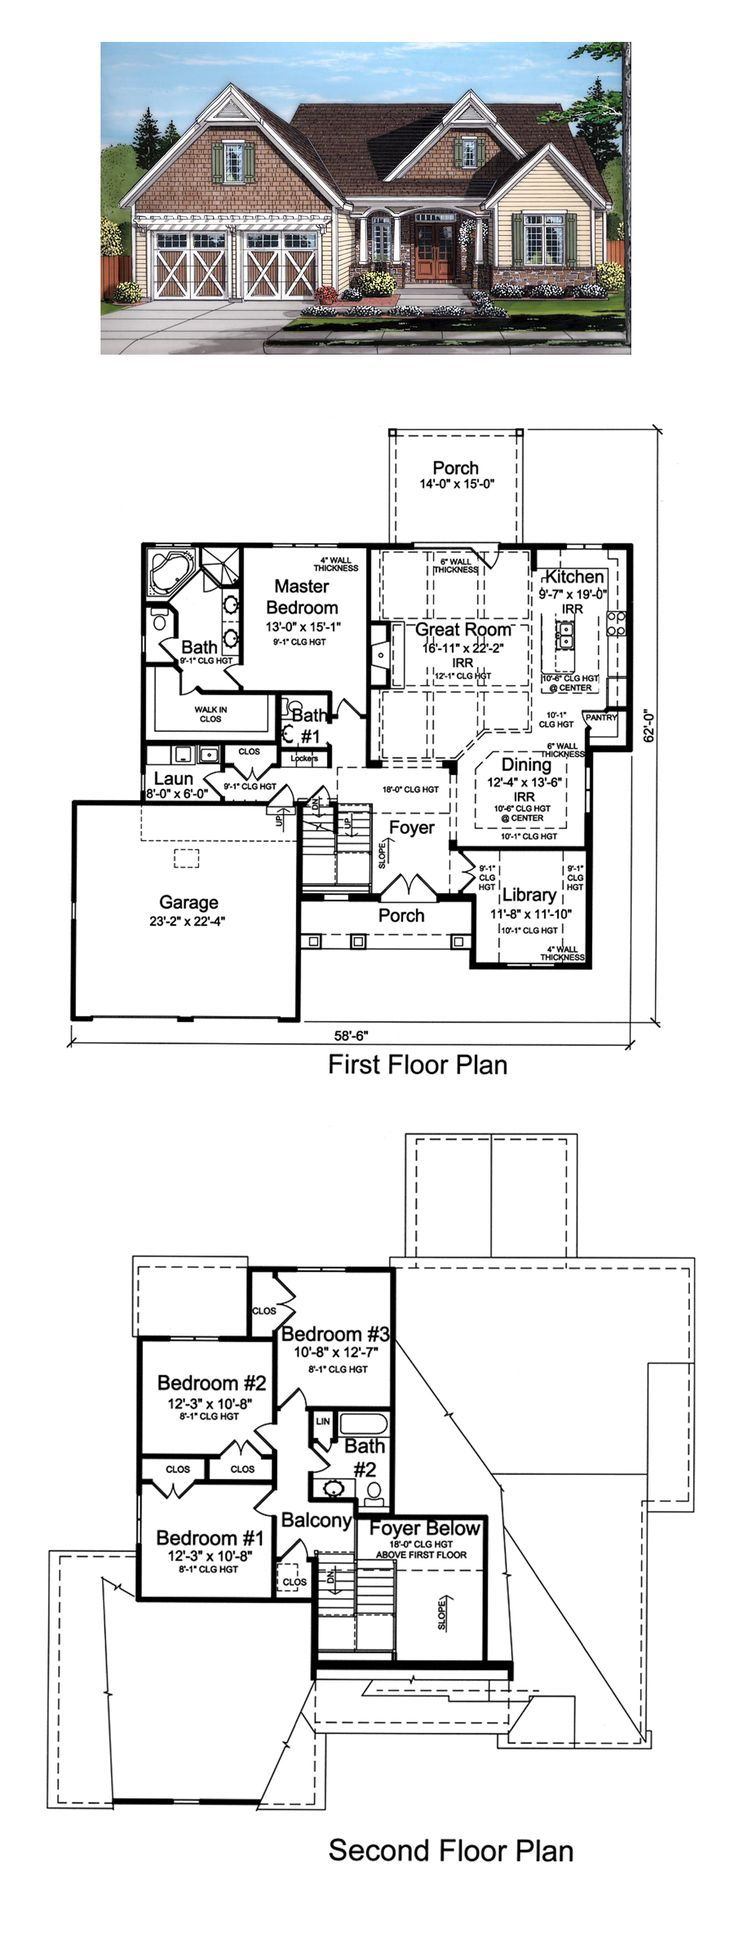 10 1000 images about New House Plans on Pinterest House plans